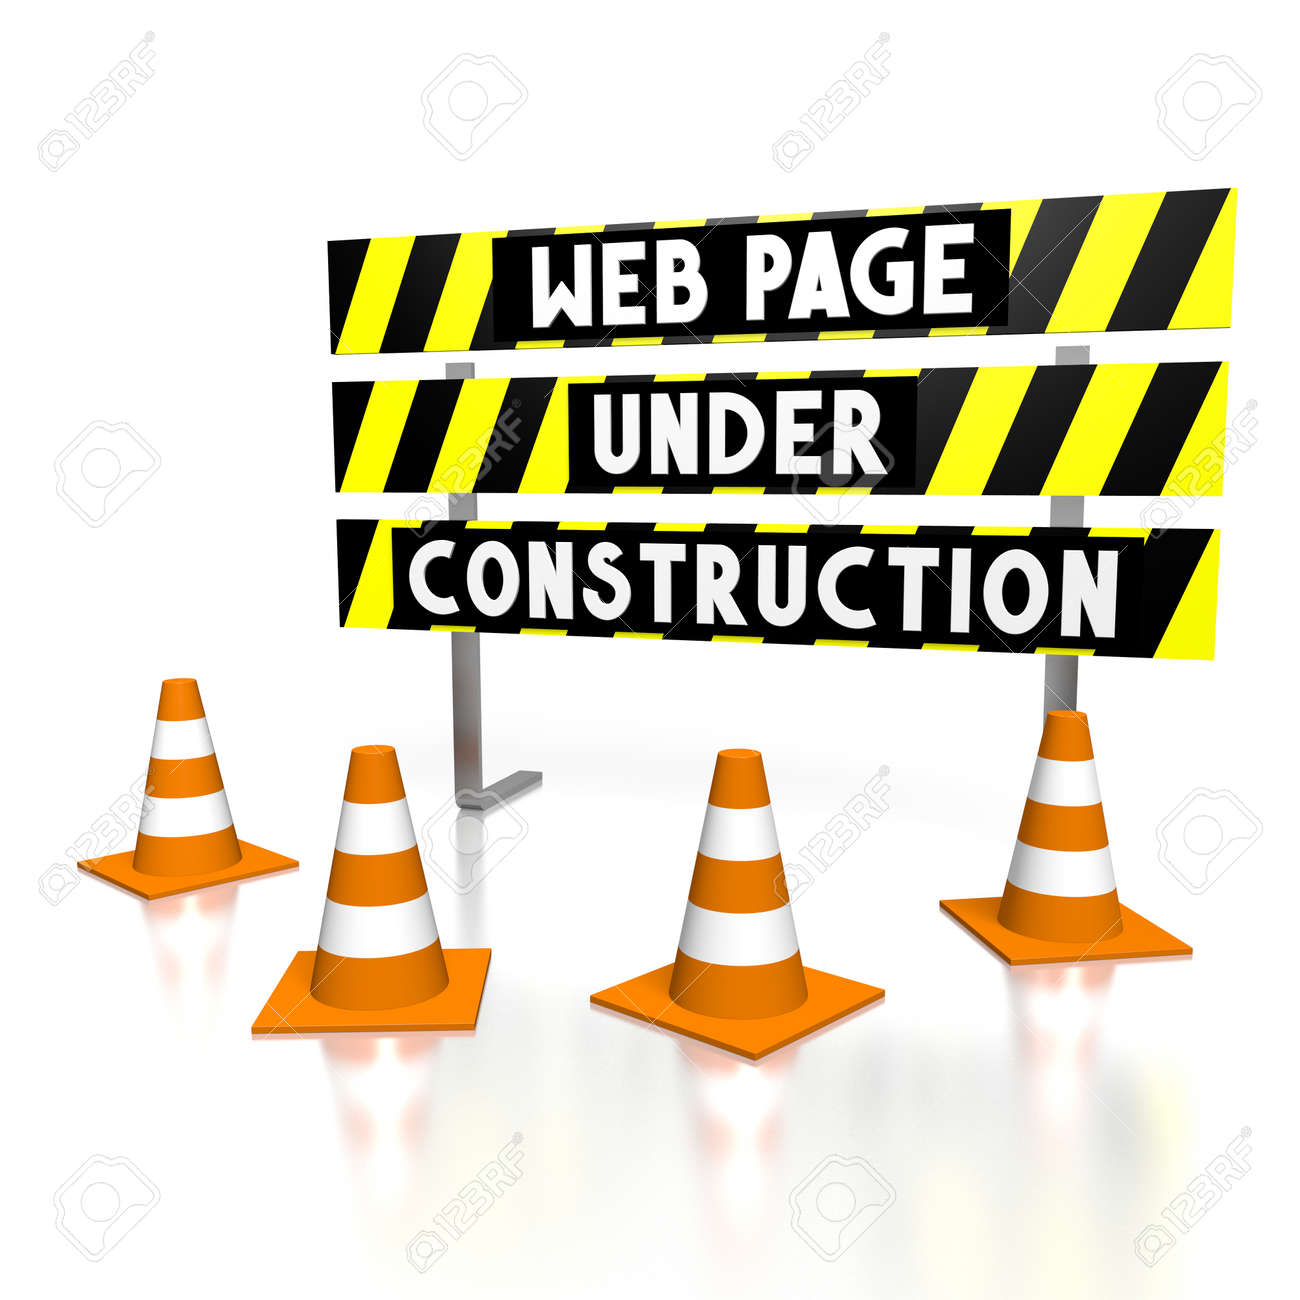 3D Web Page Under Construction Stock Photo, Picture And Royalty Free Image.  Image 79350107.